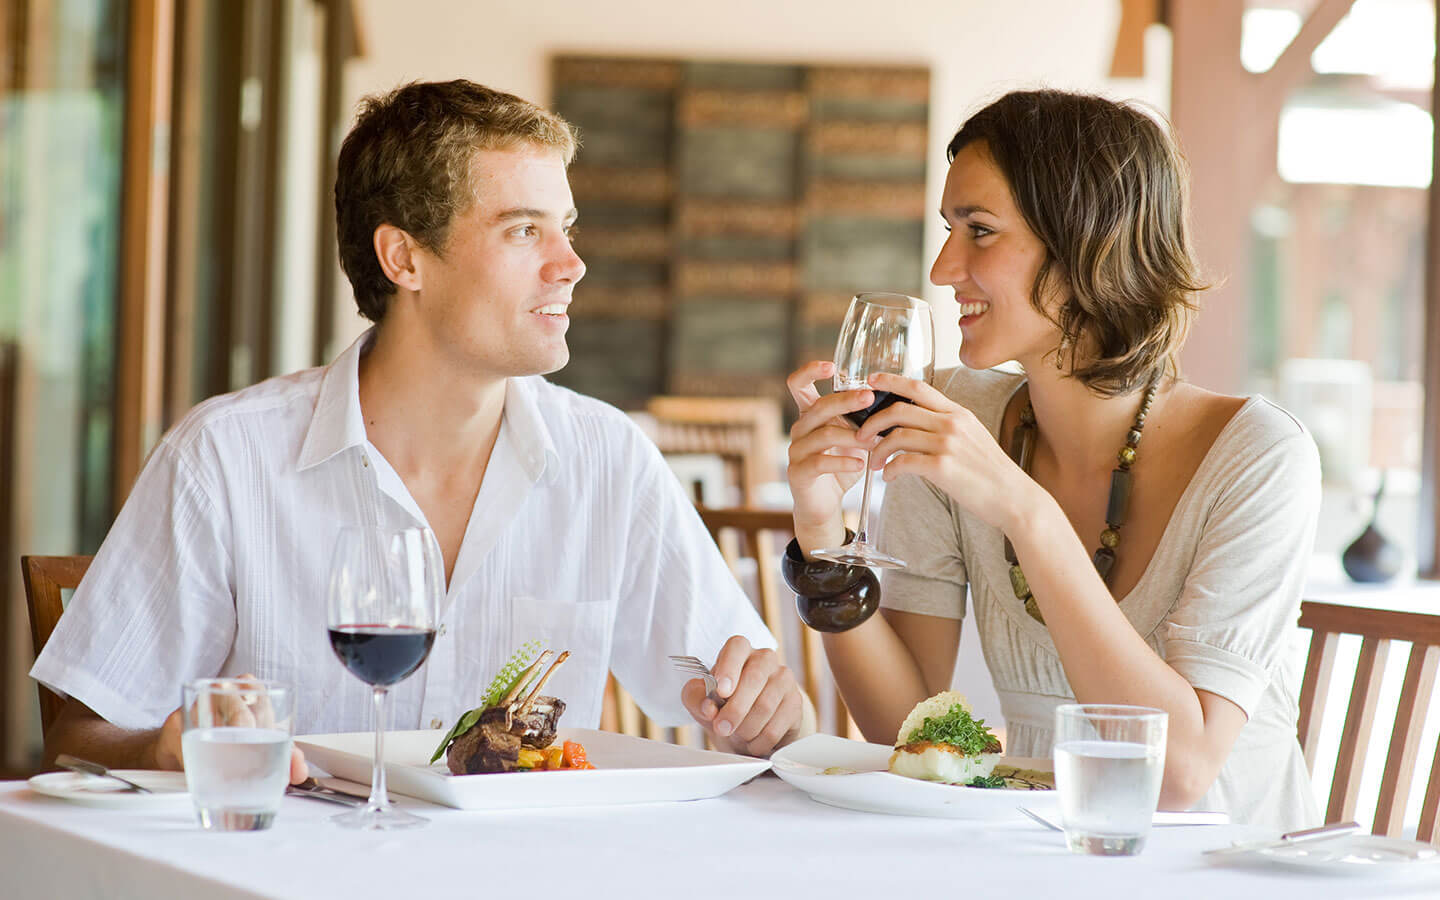 Happy young couple drinking wine and eating at a nice restaurant